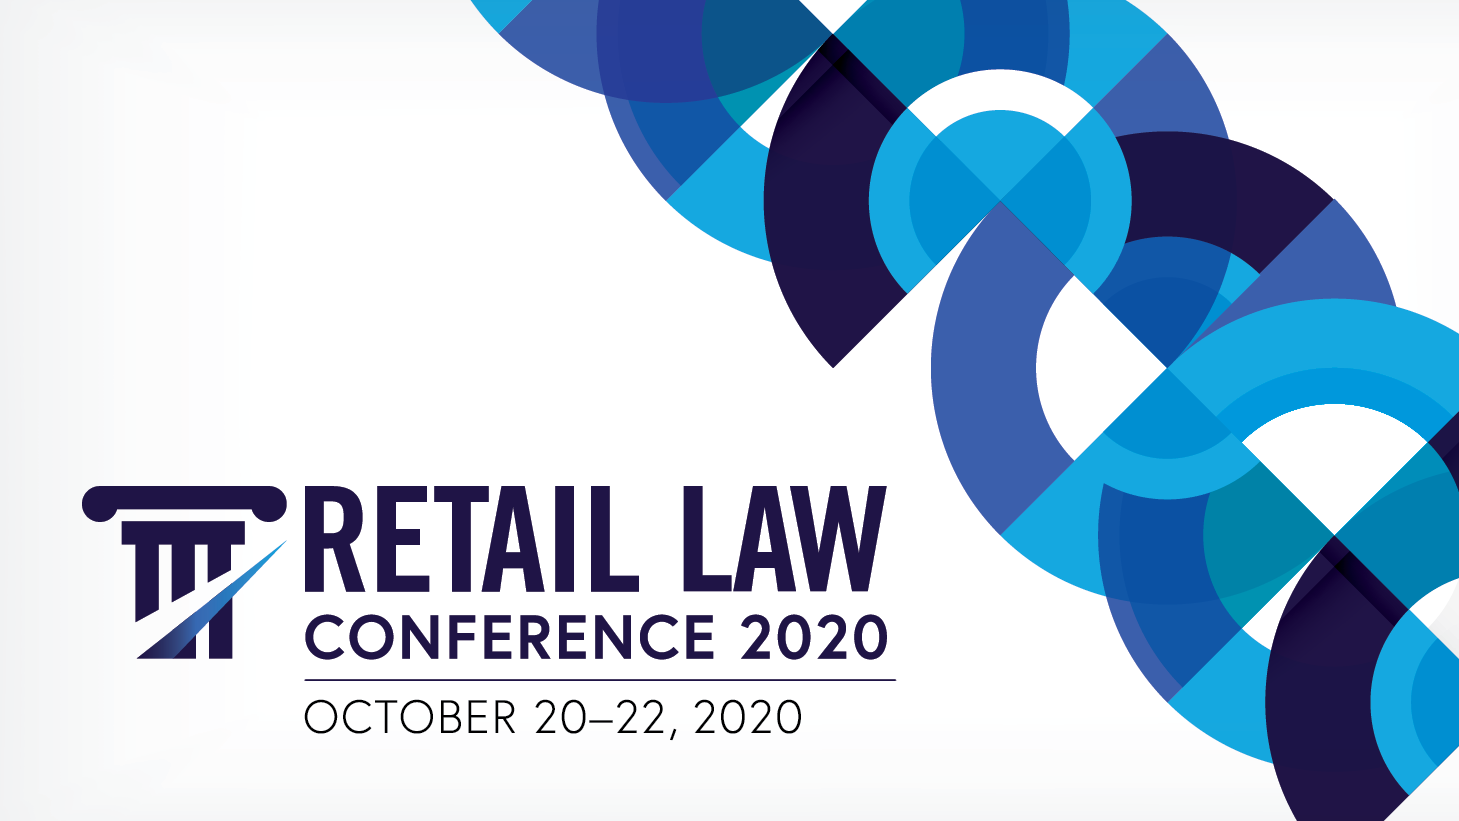 Retail Law Conference 2020